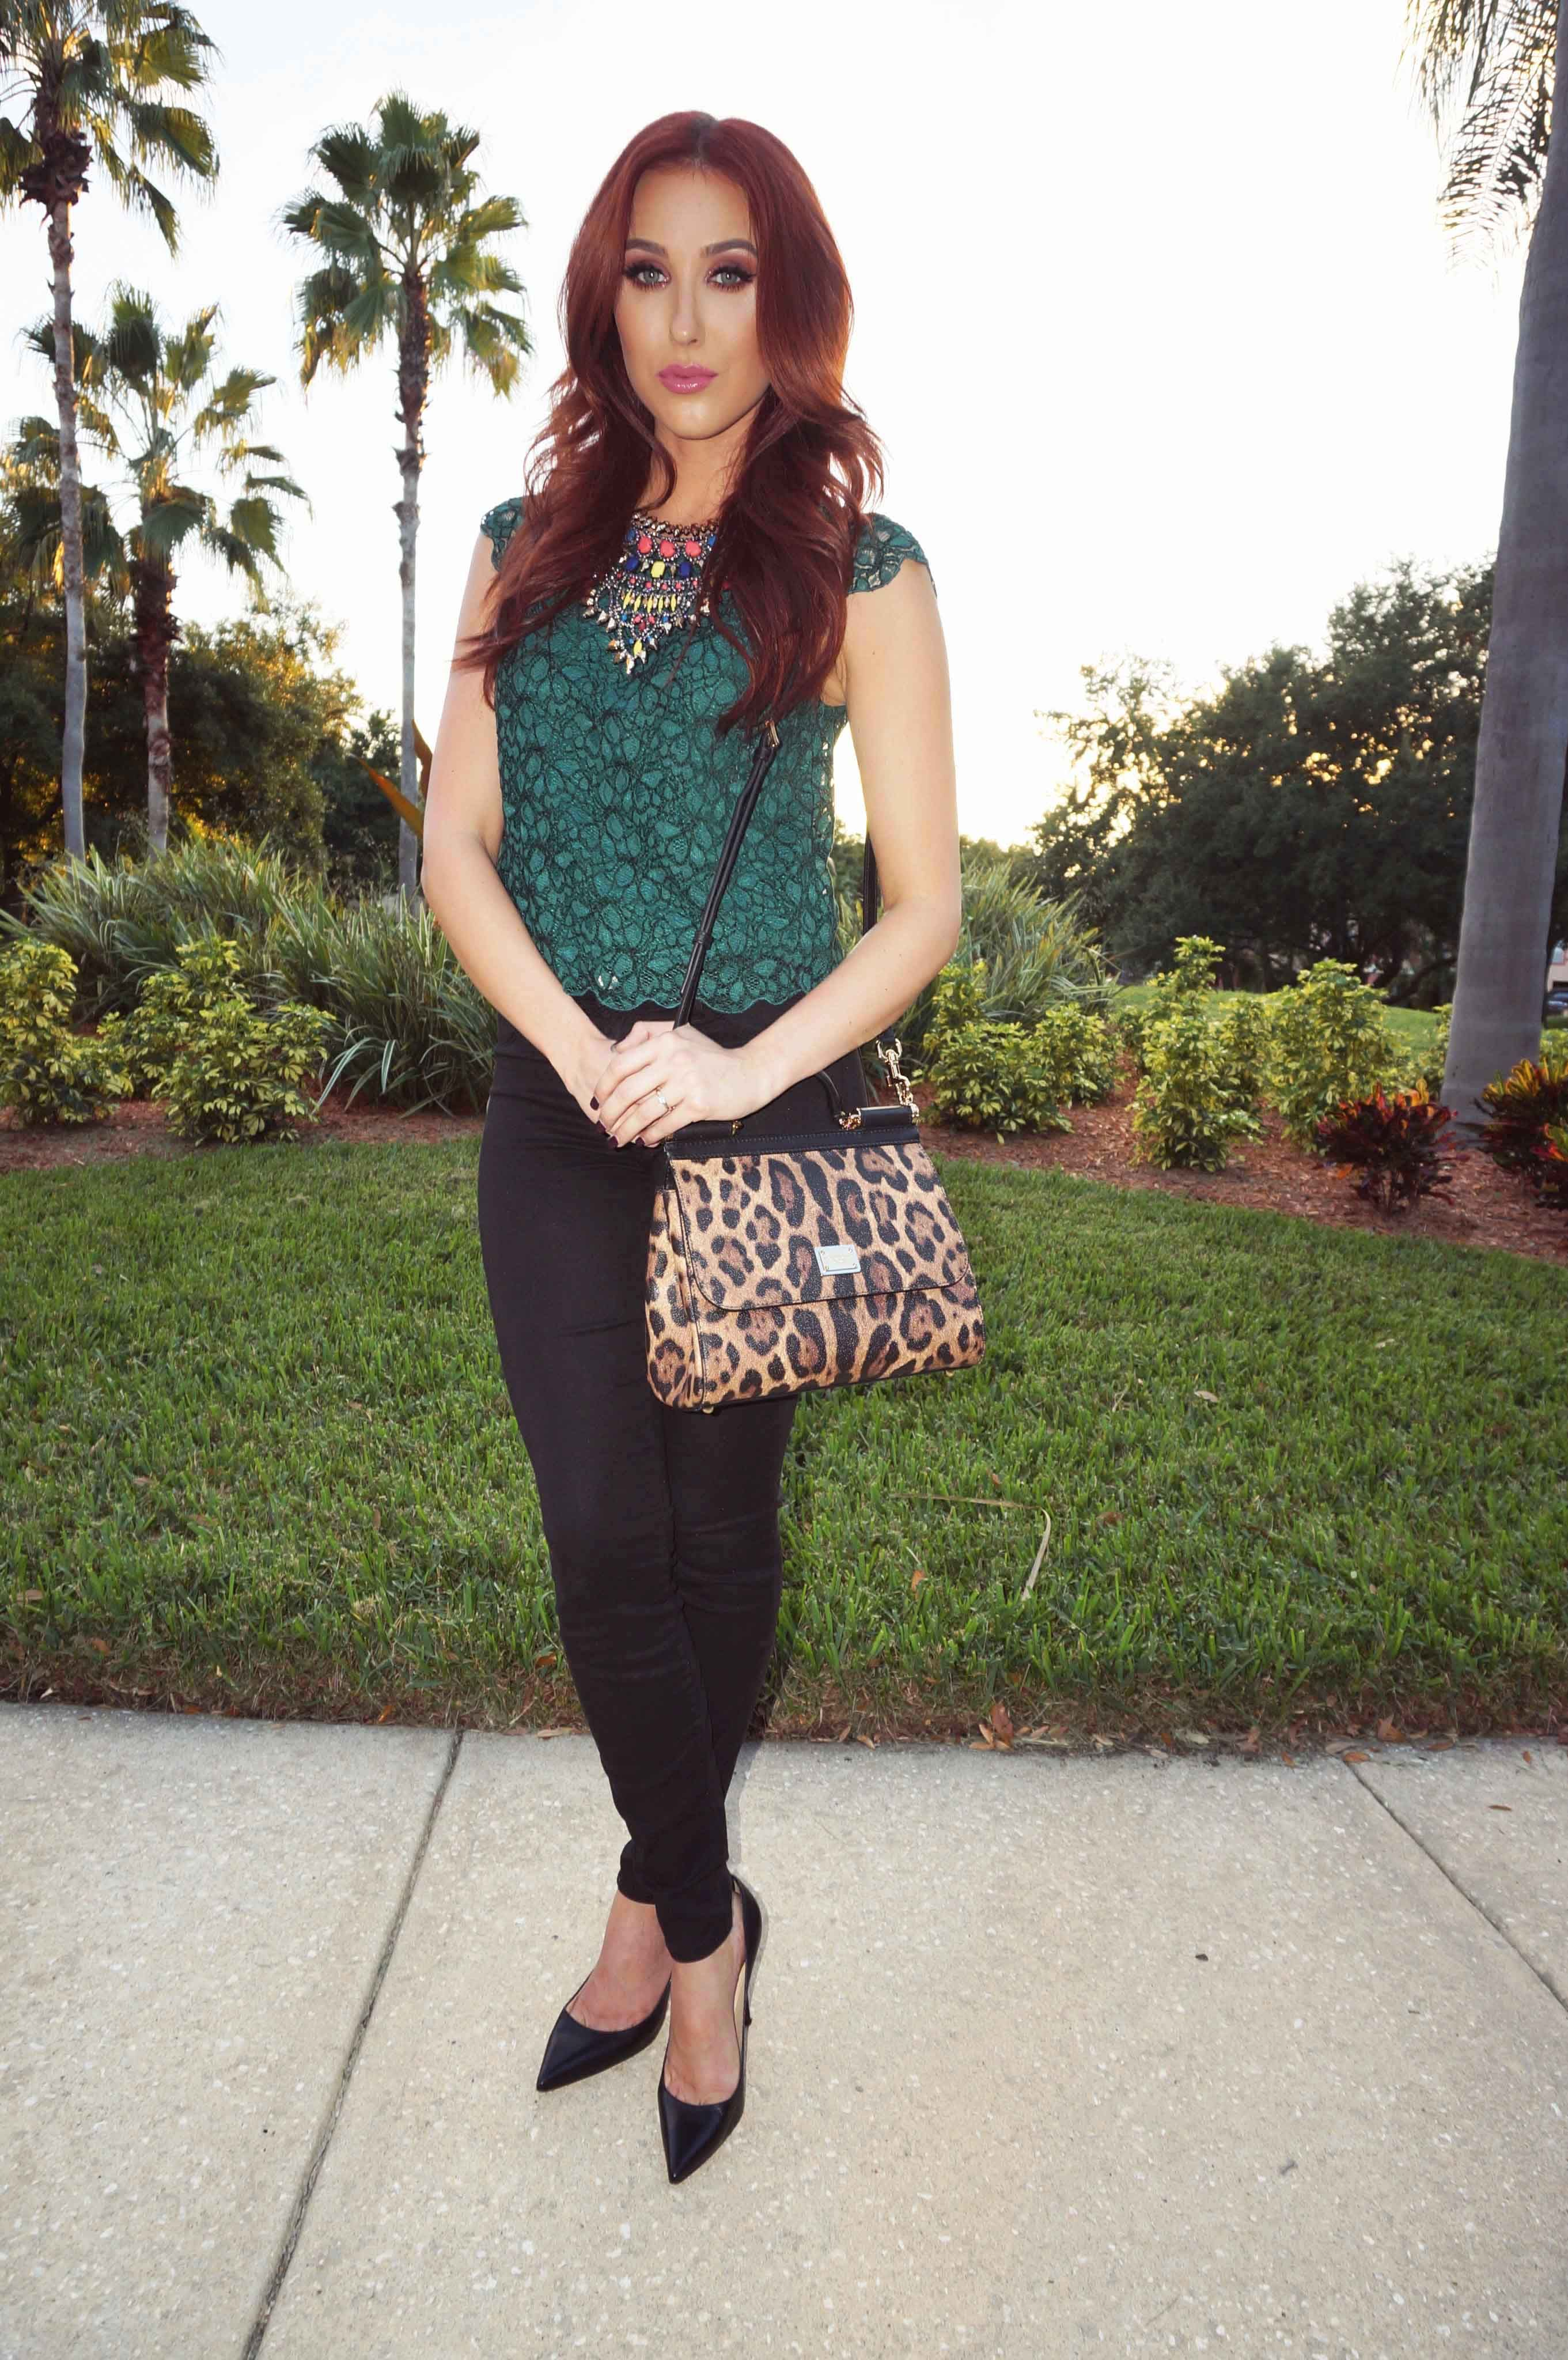 Makeup with emerald green dress  Jaclyn Hill Fashion  JACATTACK Love her  Pinterest  Fashion